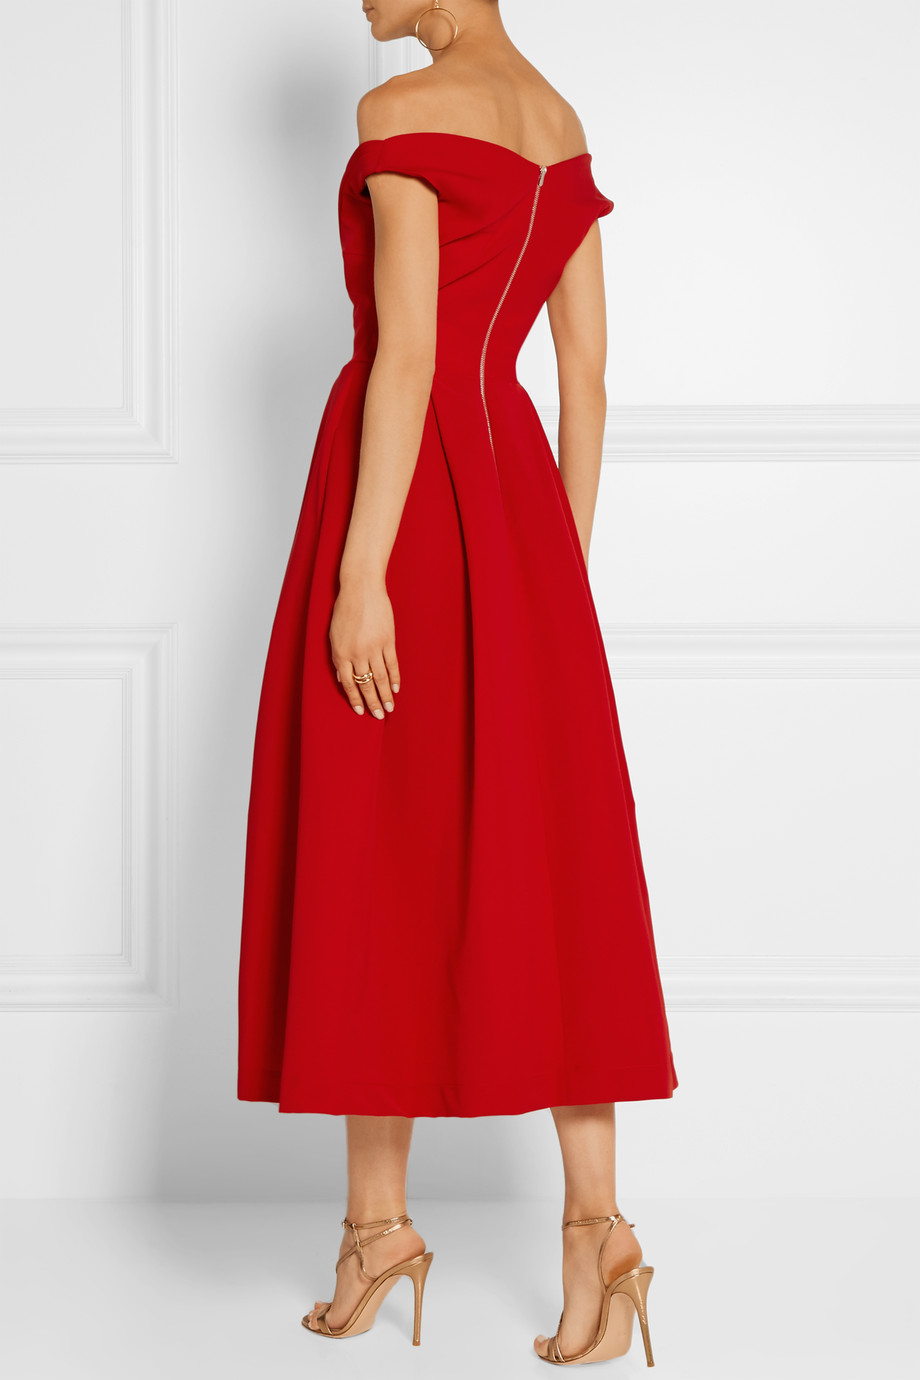 Back of the red Preen Finella dress